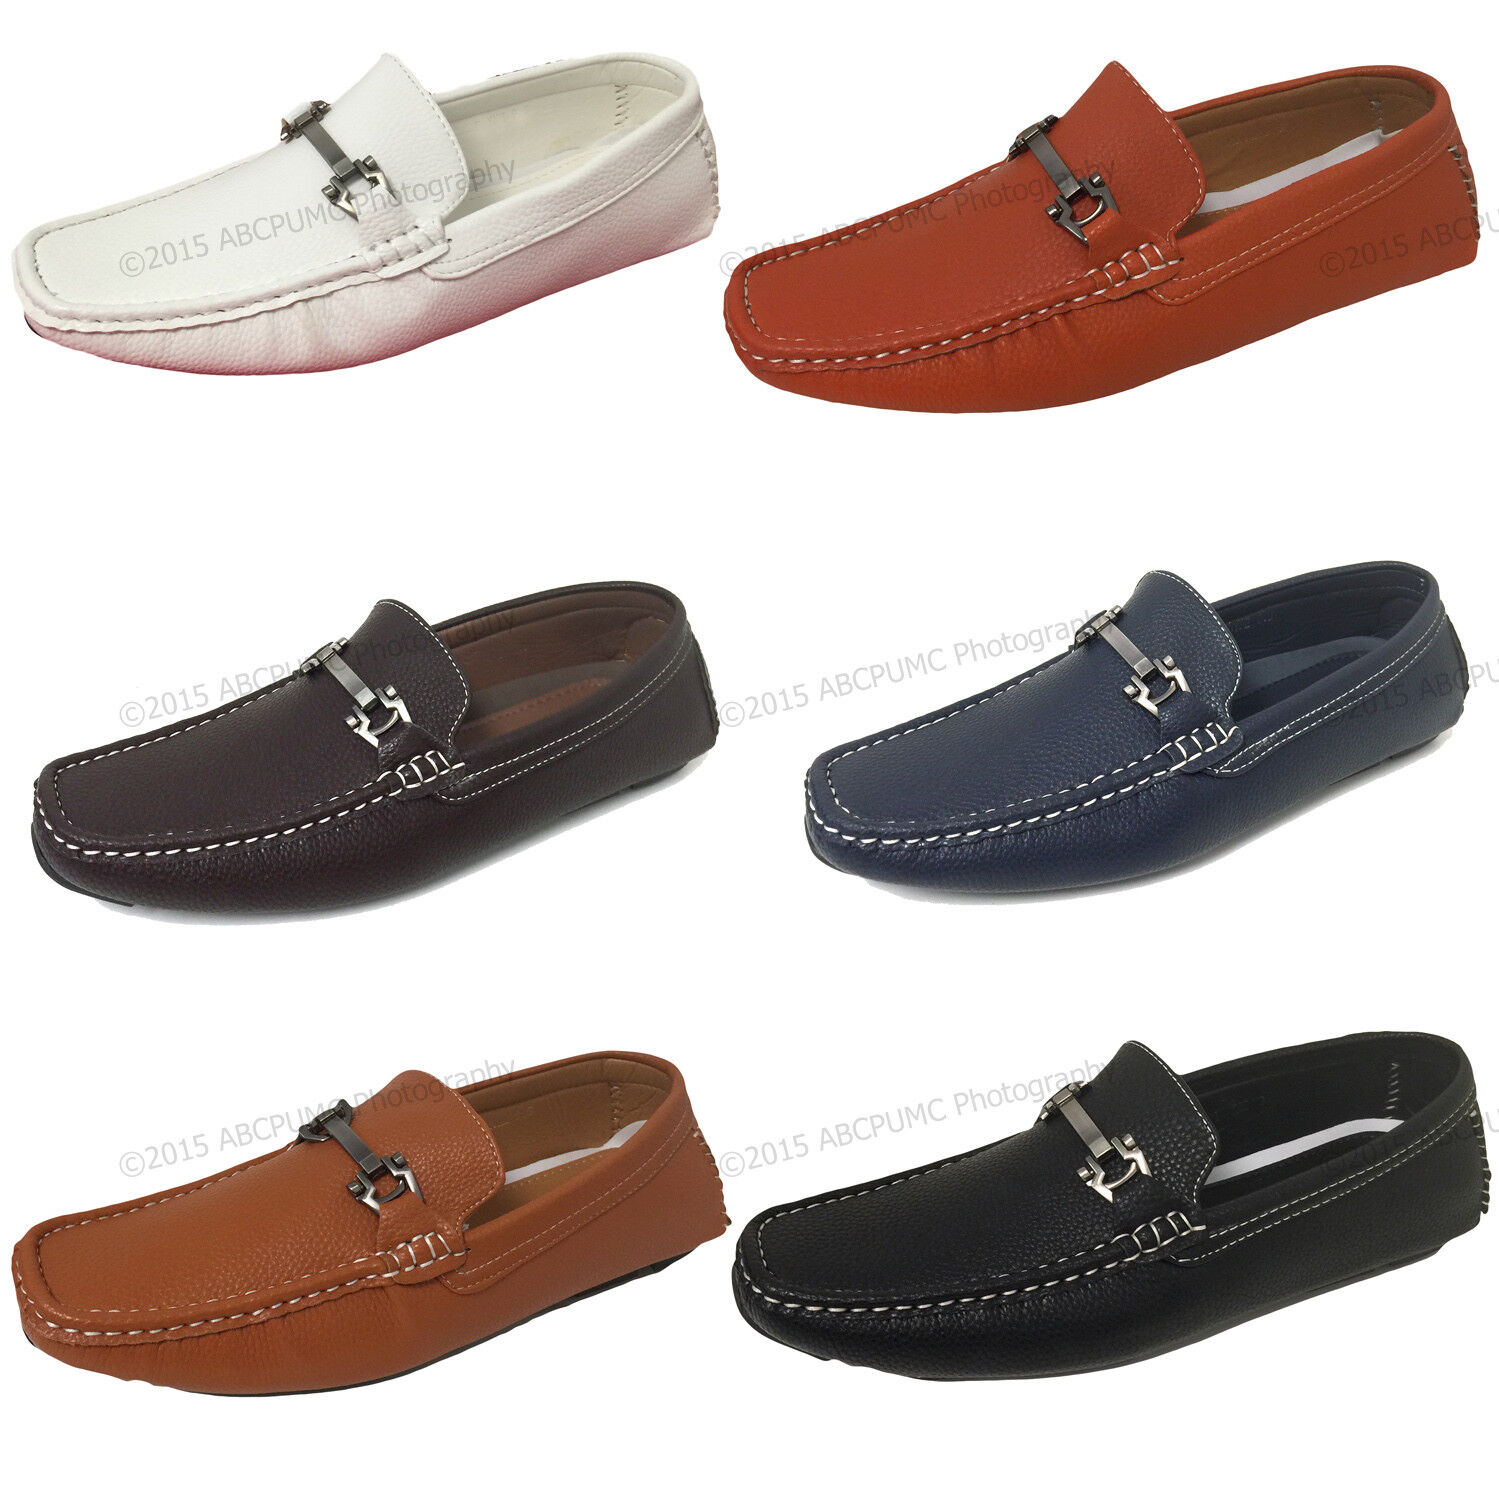 Mens Driving Casual Moccasins Leather Loafers Slip On Boat D